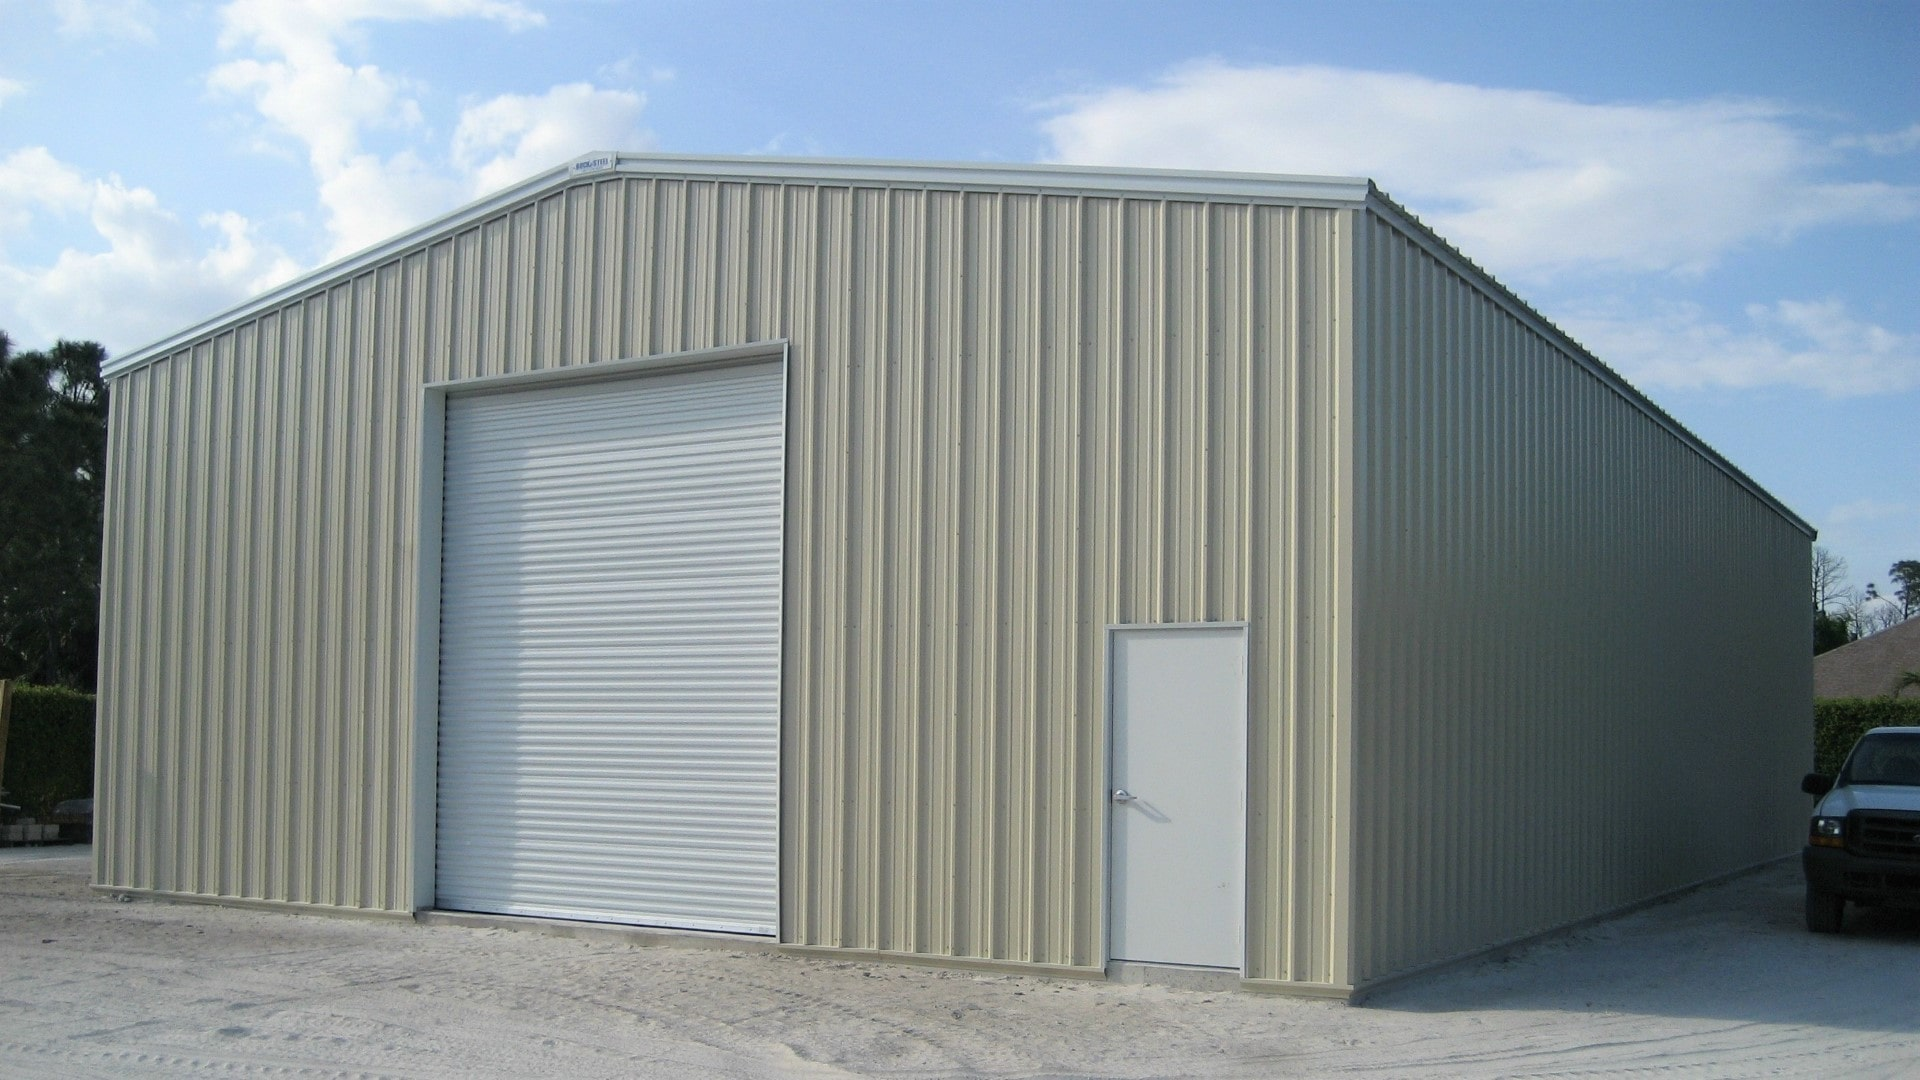 Tan metal garage shop with white trim, white walk door and white rollup door. View of right endwall and back  sidewall.